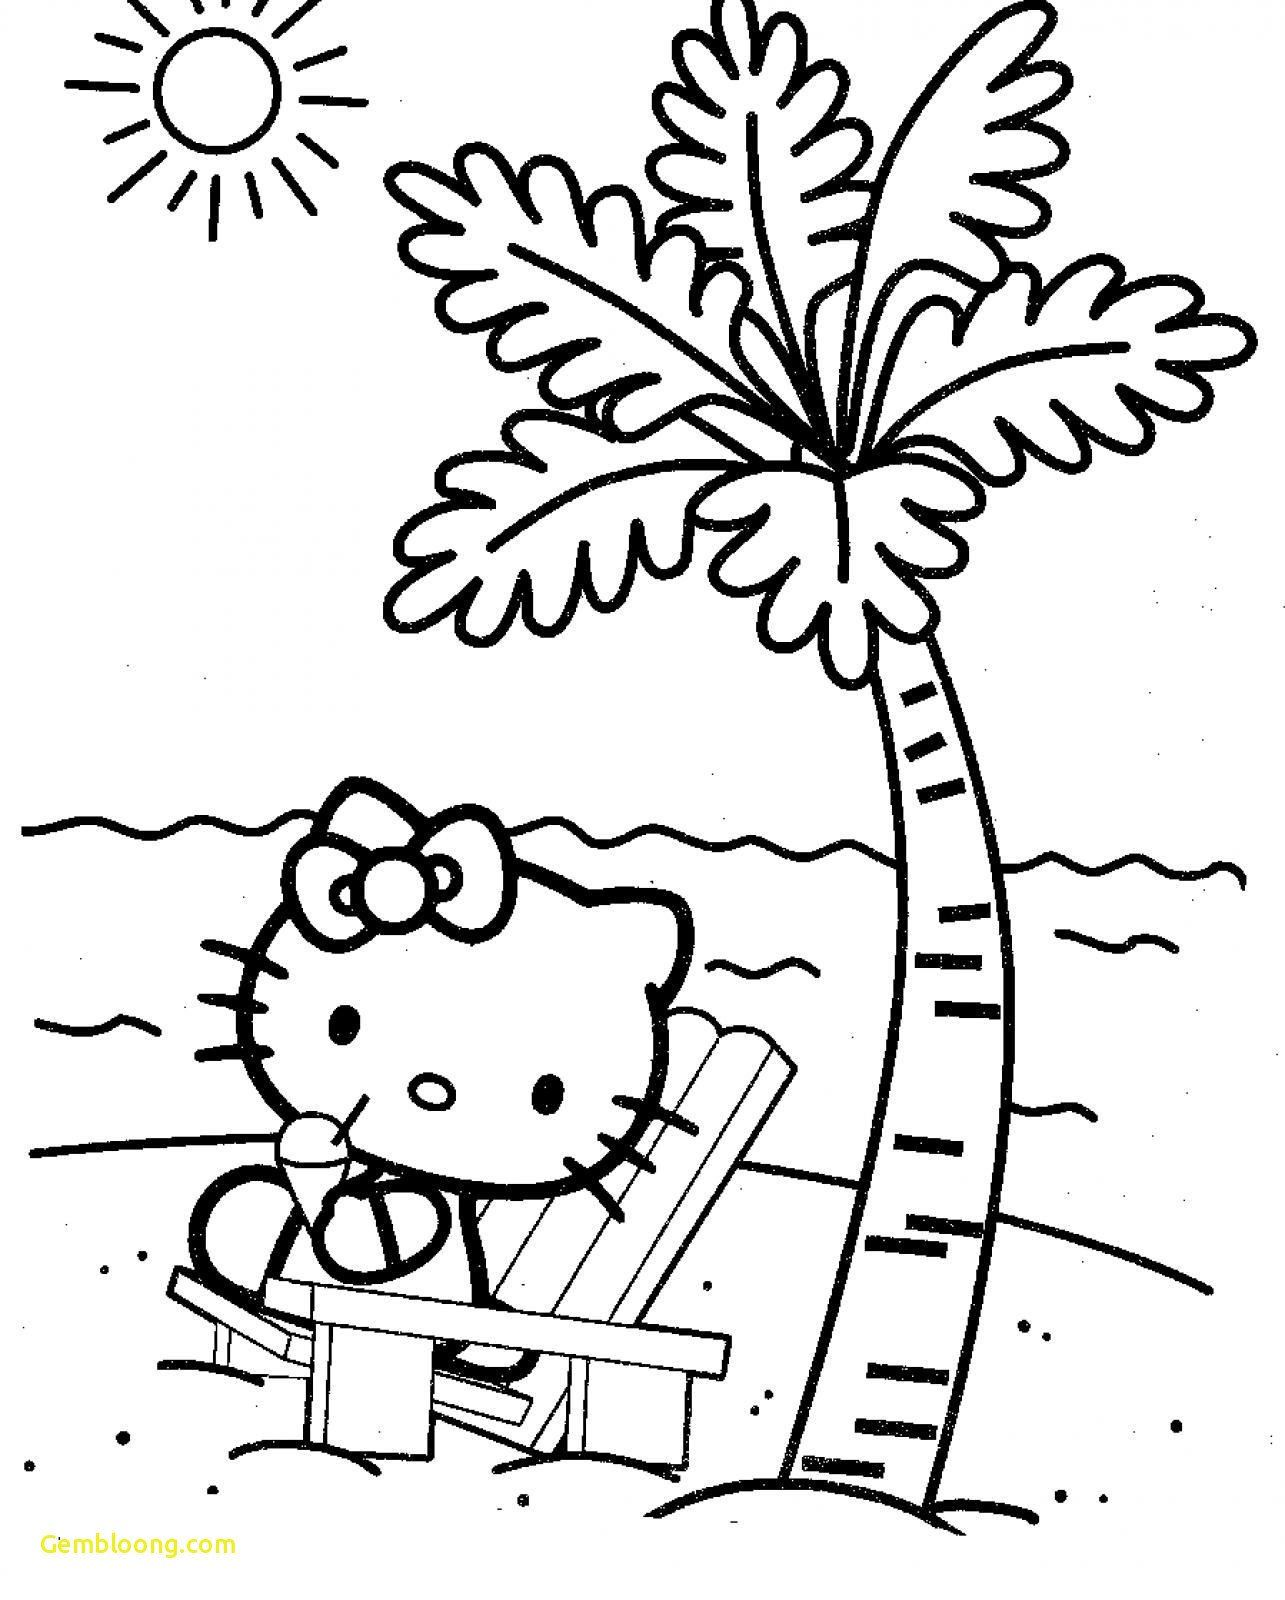 Hello Kitty Coloring Pages Free Printable Coloring Pages Hello Kitty Coloring Book Fres Hello Kitty Coloring Hello Kitty Colouring Pages Hello Kitty Printables